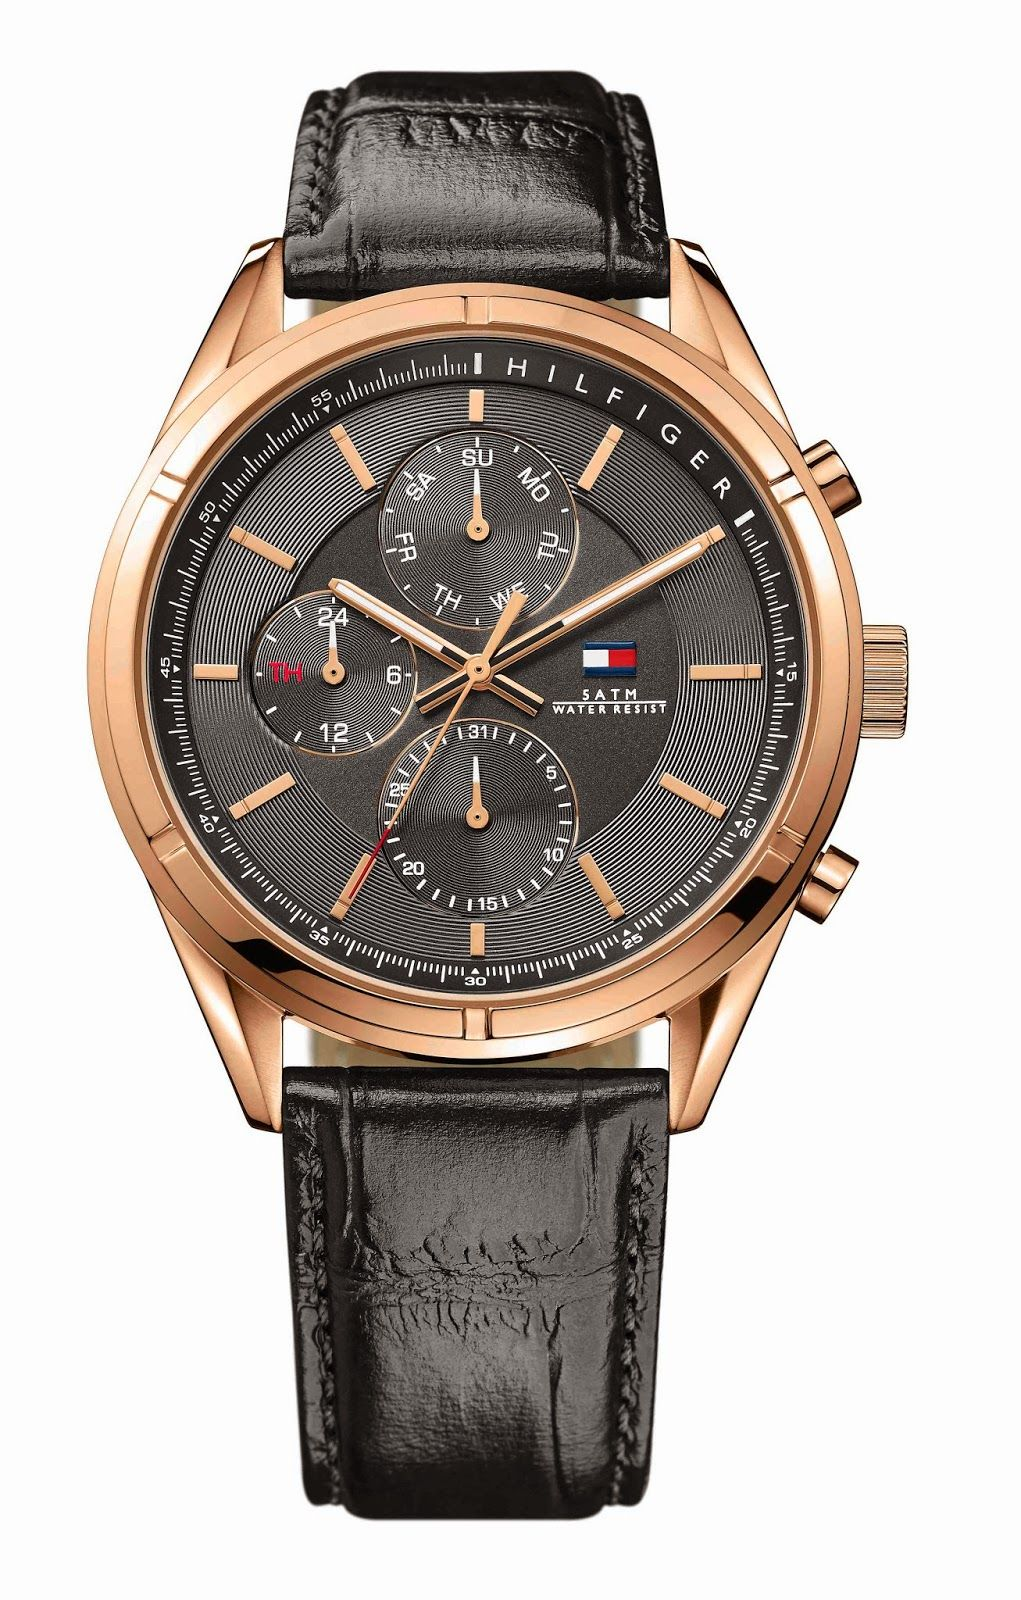 rose gold mens watch headlines tommy hilfiger watches new ss15 collection smart watches. Black Bedroom Furniture Sets. Home Design Ideas